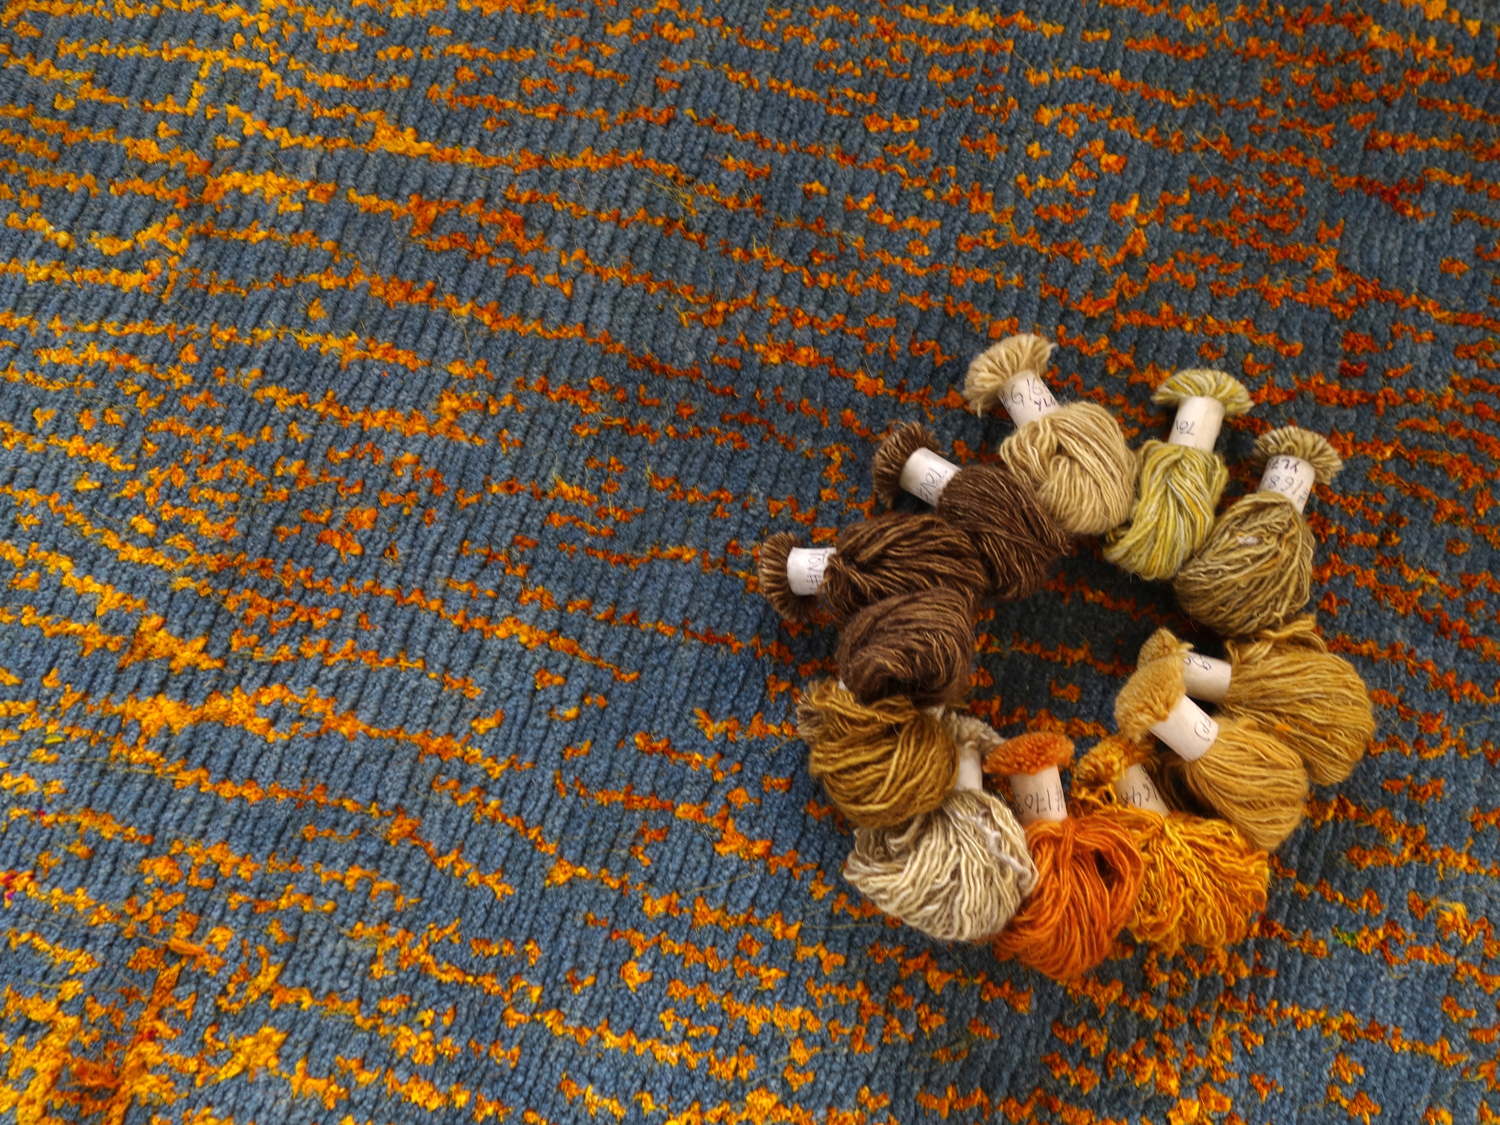 Lapchi rug and yarn samples